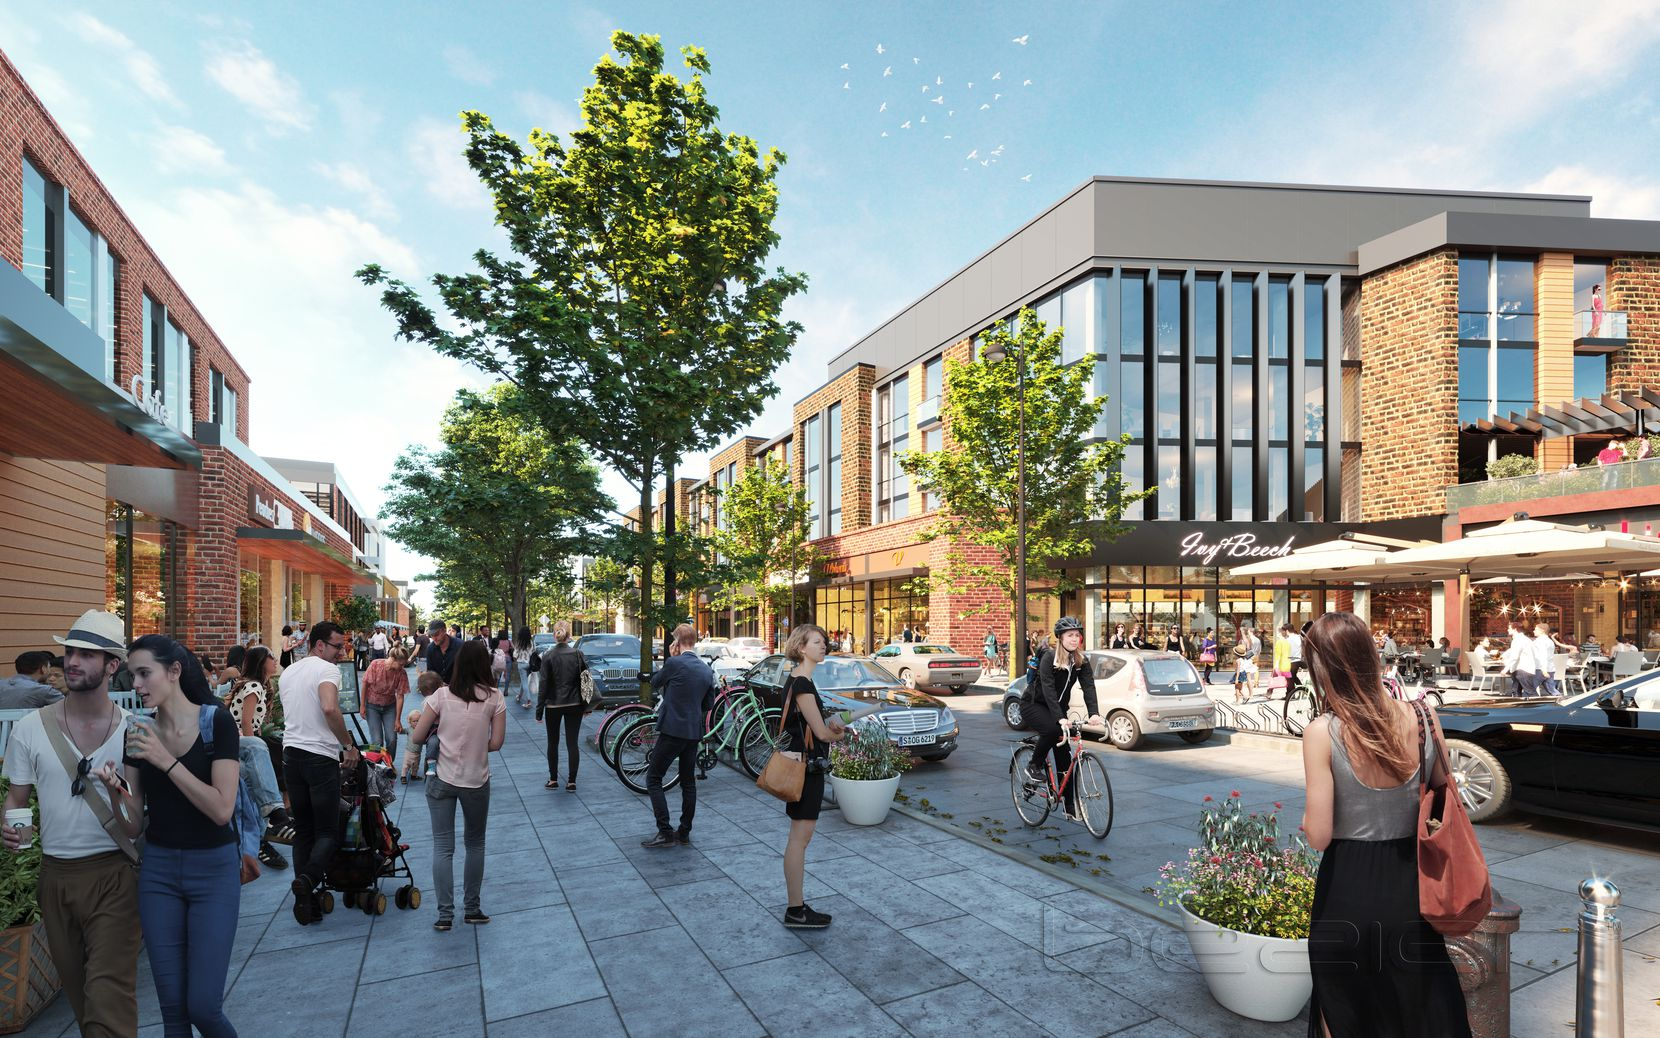 The North Fields project will include urban-style retail and restaurants.